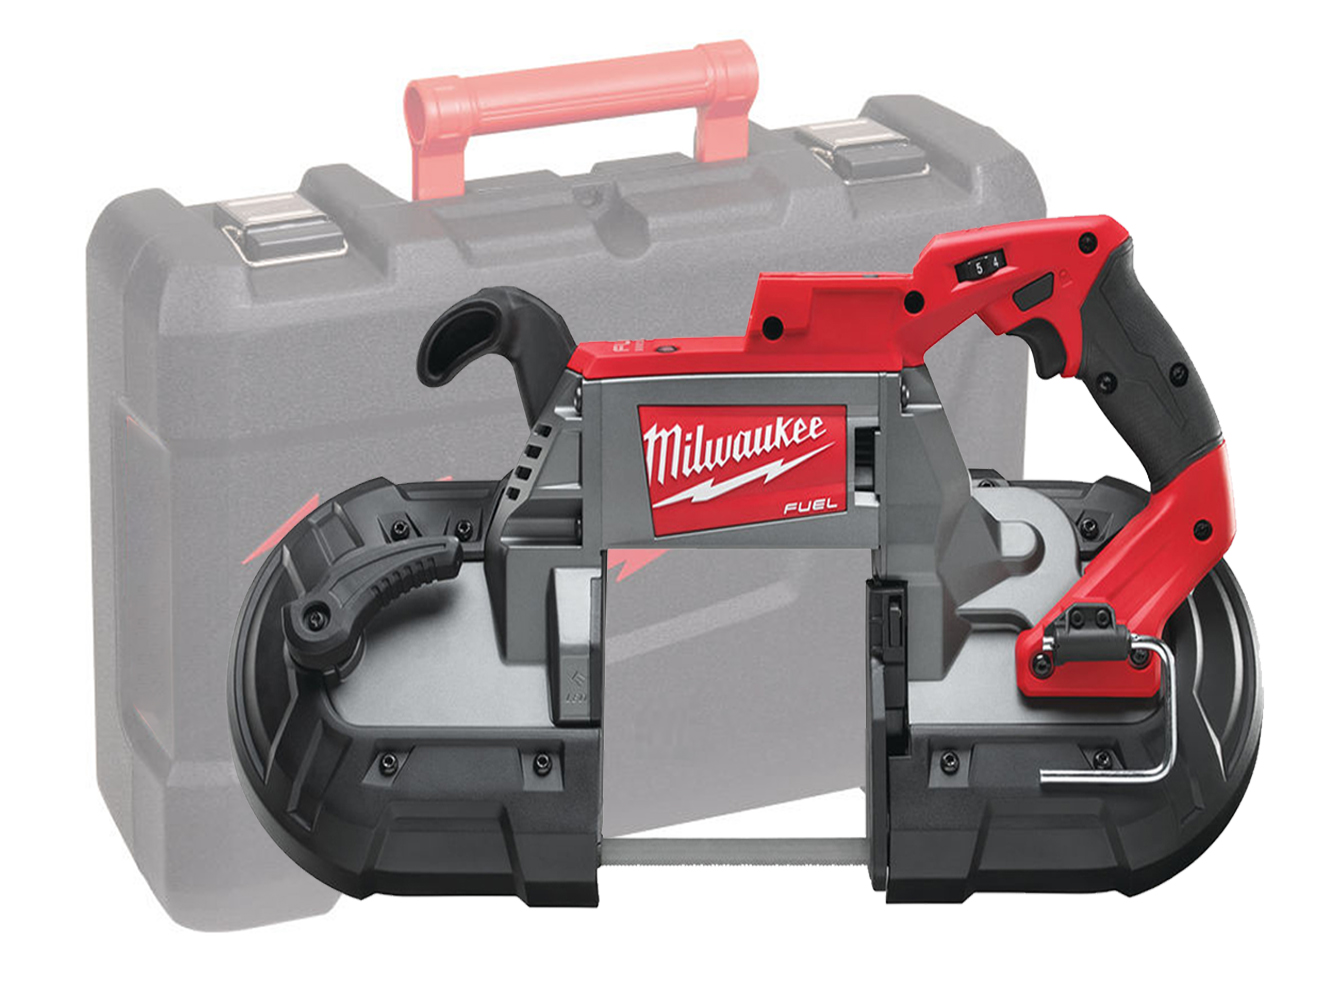 Milwaukee M18CBS125 18V FUEL Deep Cut Bandsaw 125mm x 125mm Cutting Capacity - Body Only